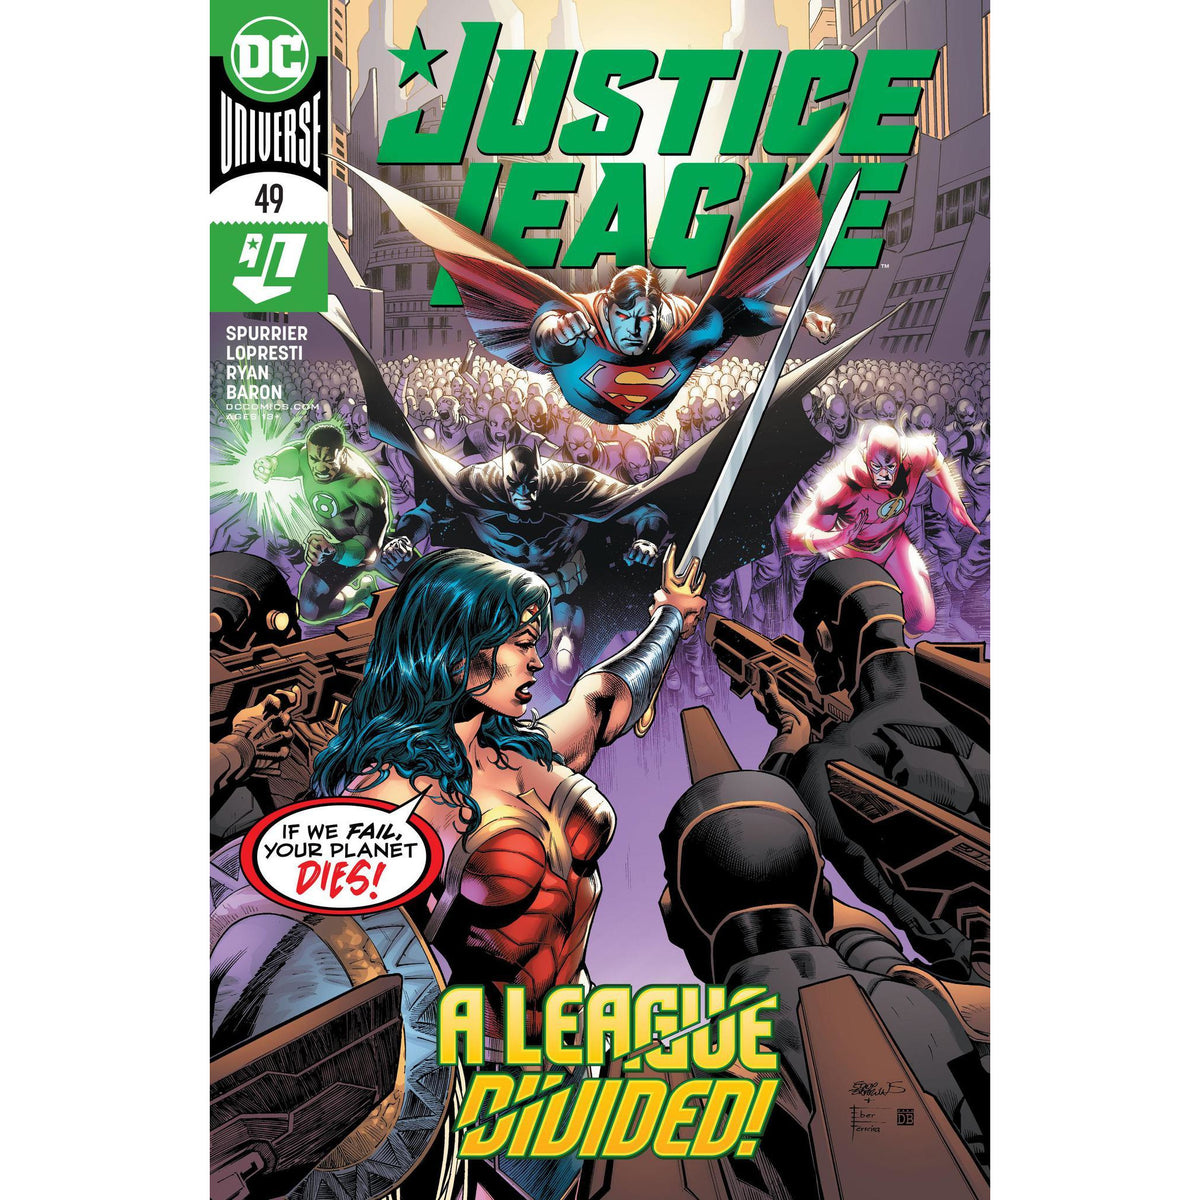 JUSTICE LEAGUE #49 - MAIN COVER A